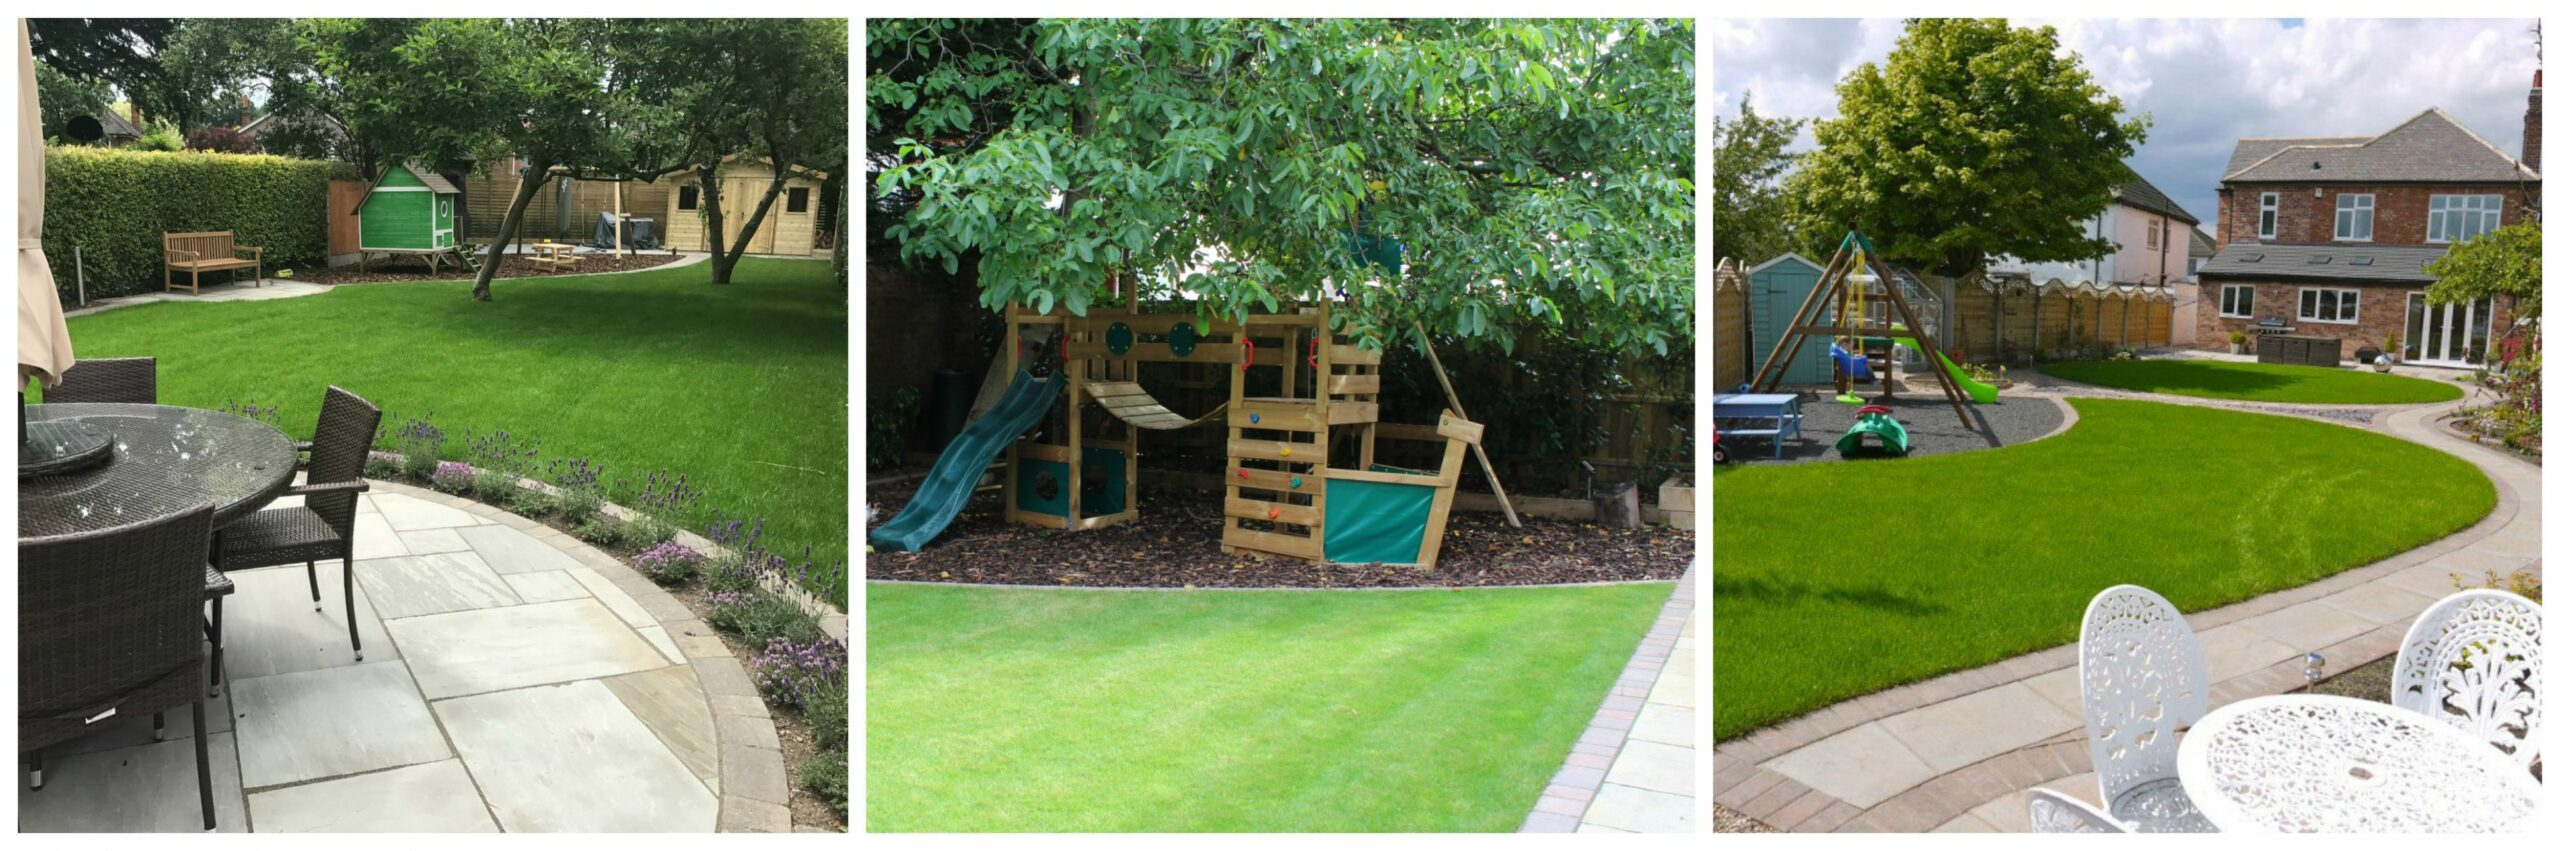 Child Friendly Garden Design